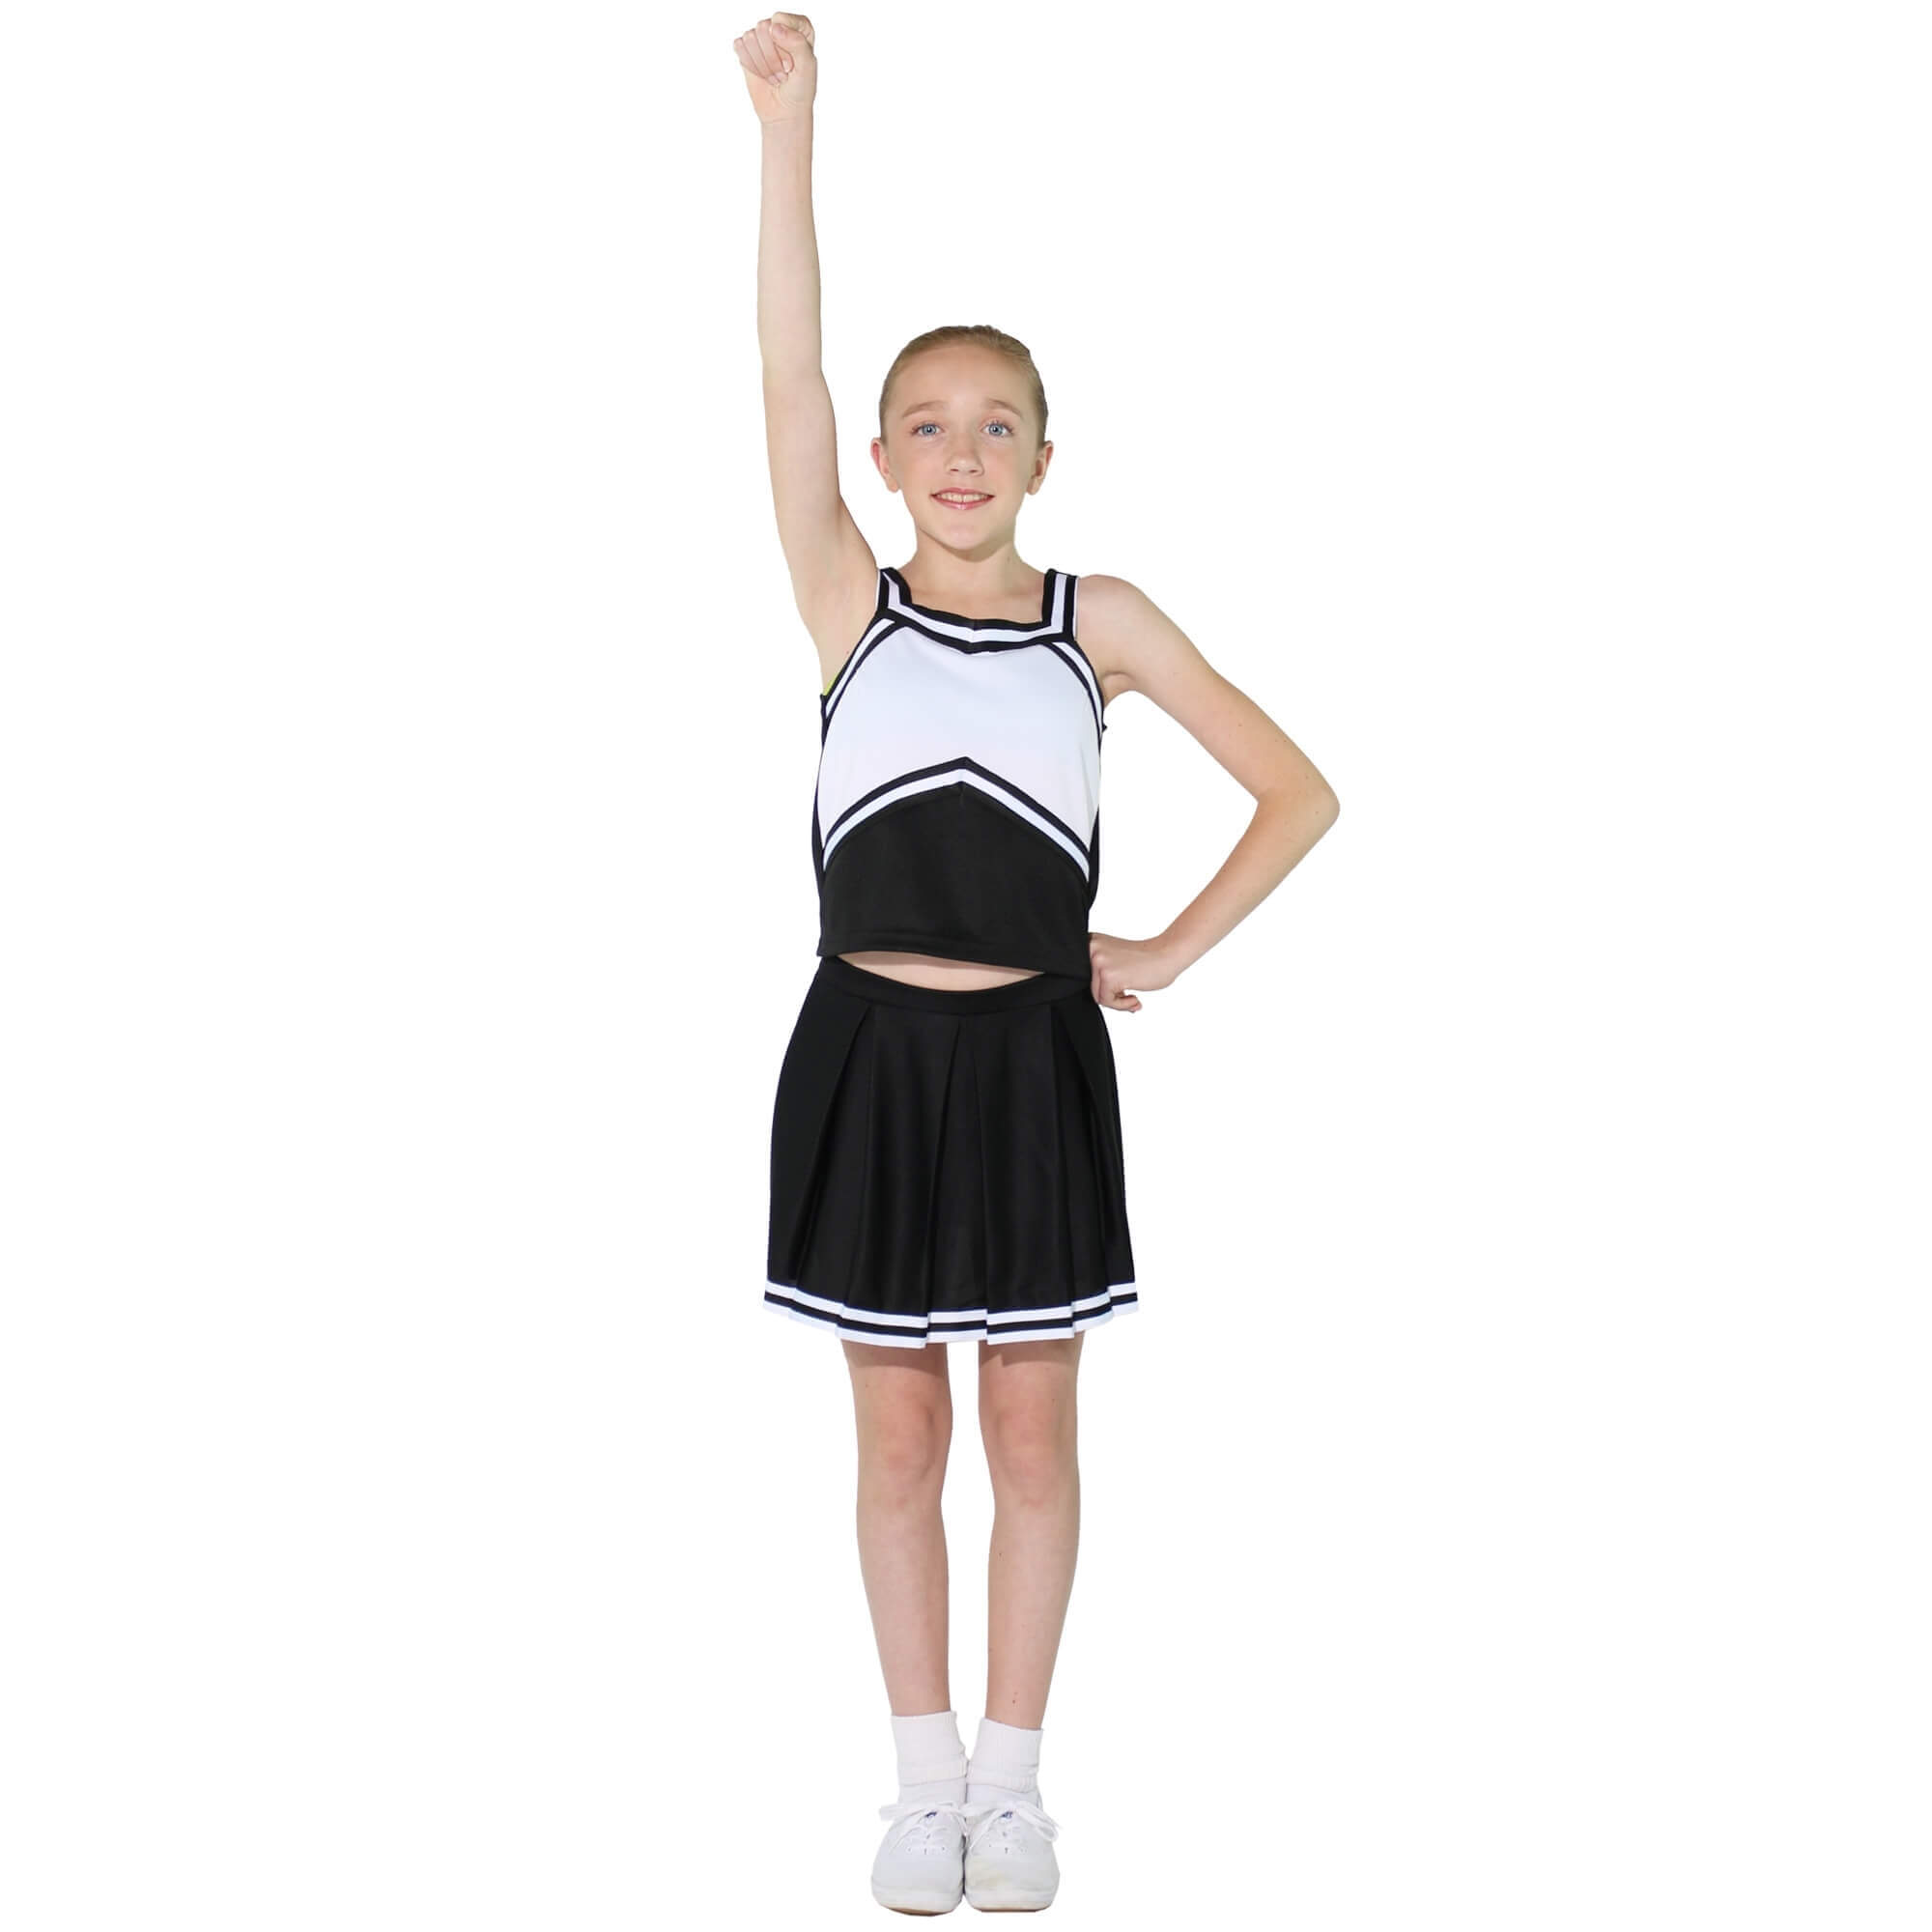 Danzcue Child Sweetheart Knit Pleat Skirt Cheerleaders Uniform Set